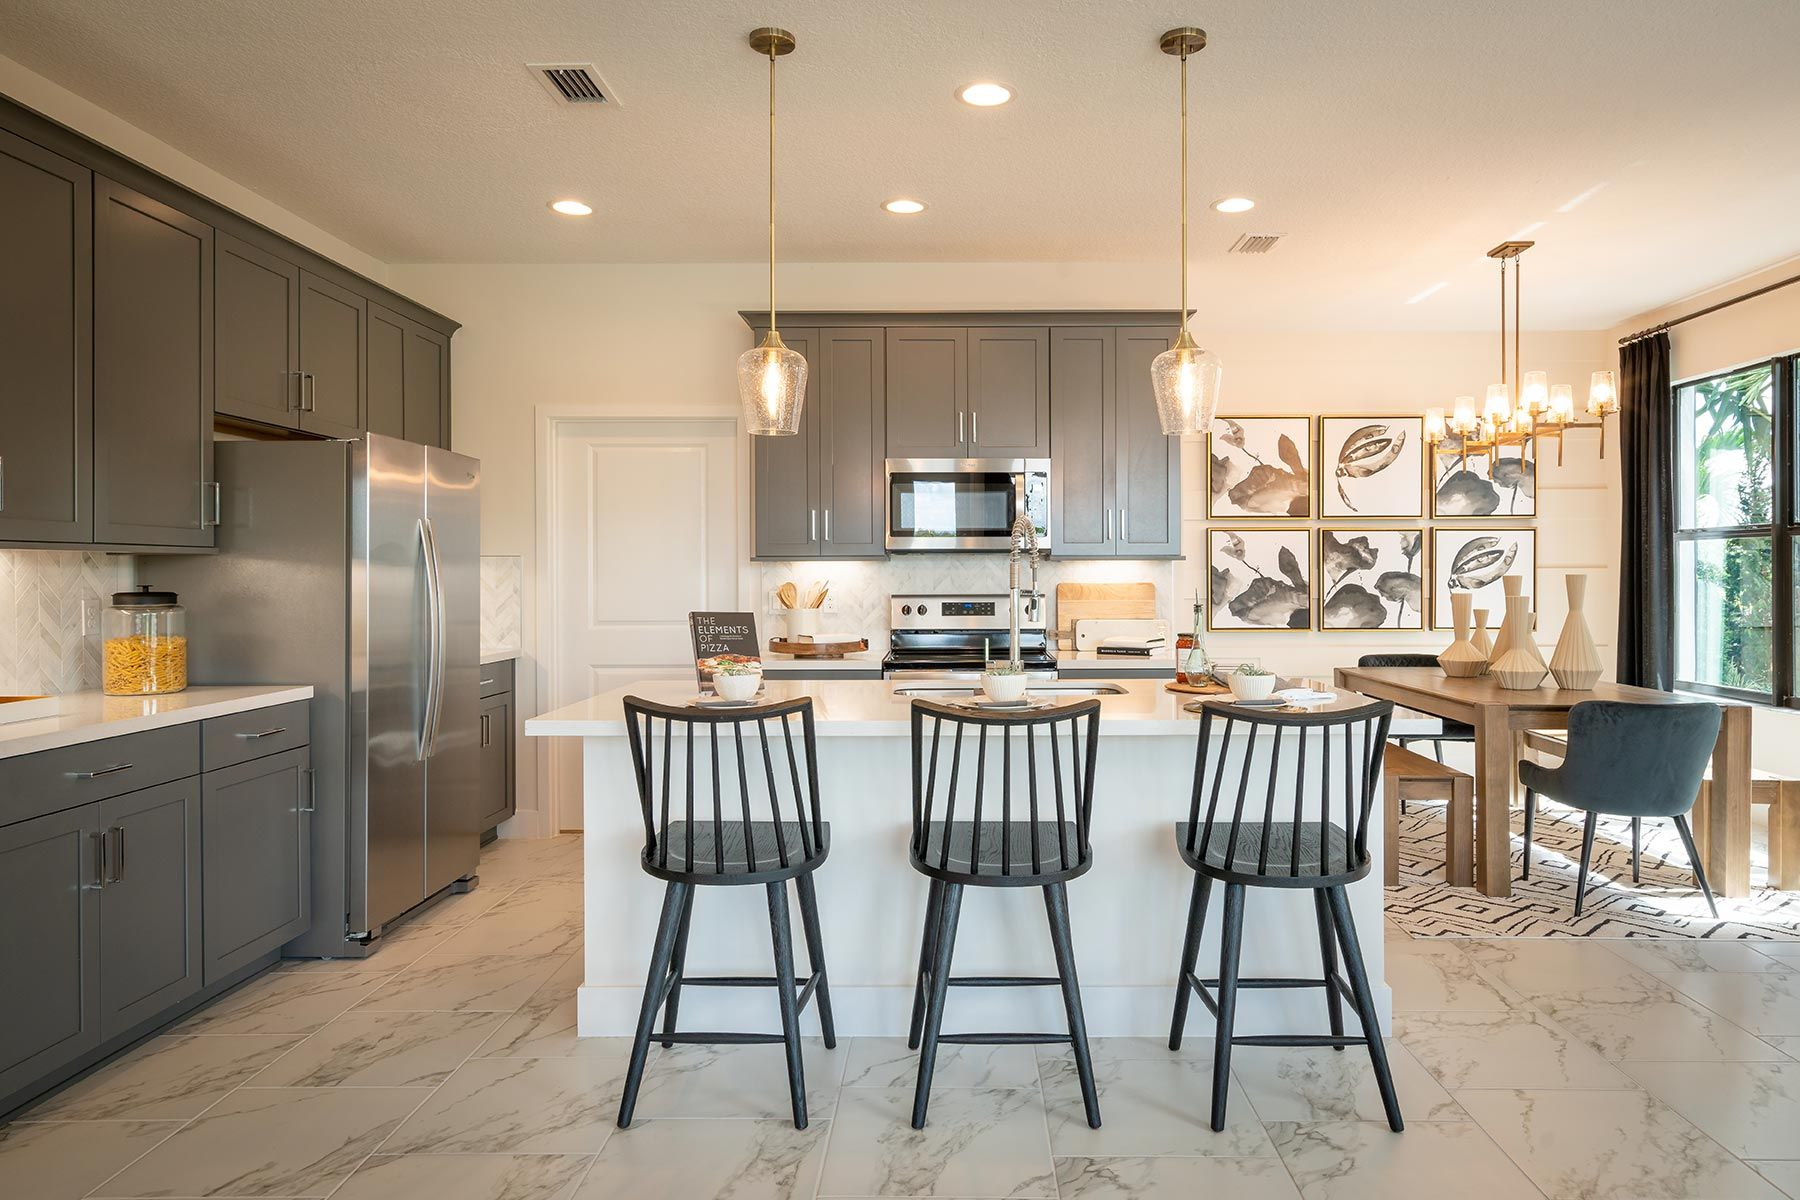 Kitchen featured in the Ellery By Mattamy Homes in Palm Beach County, FL